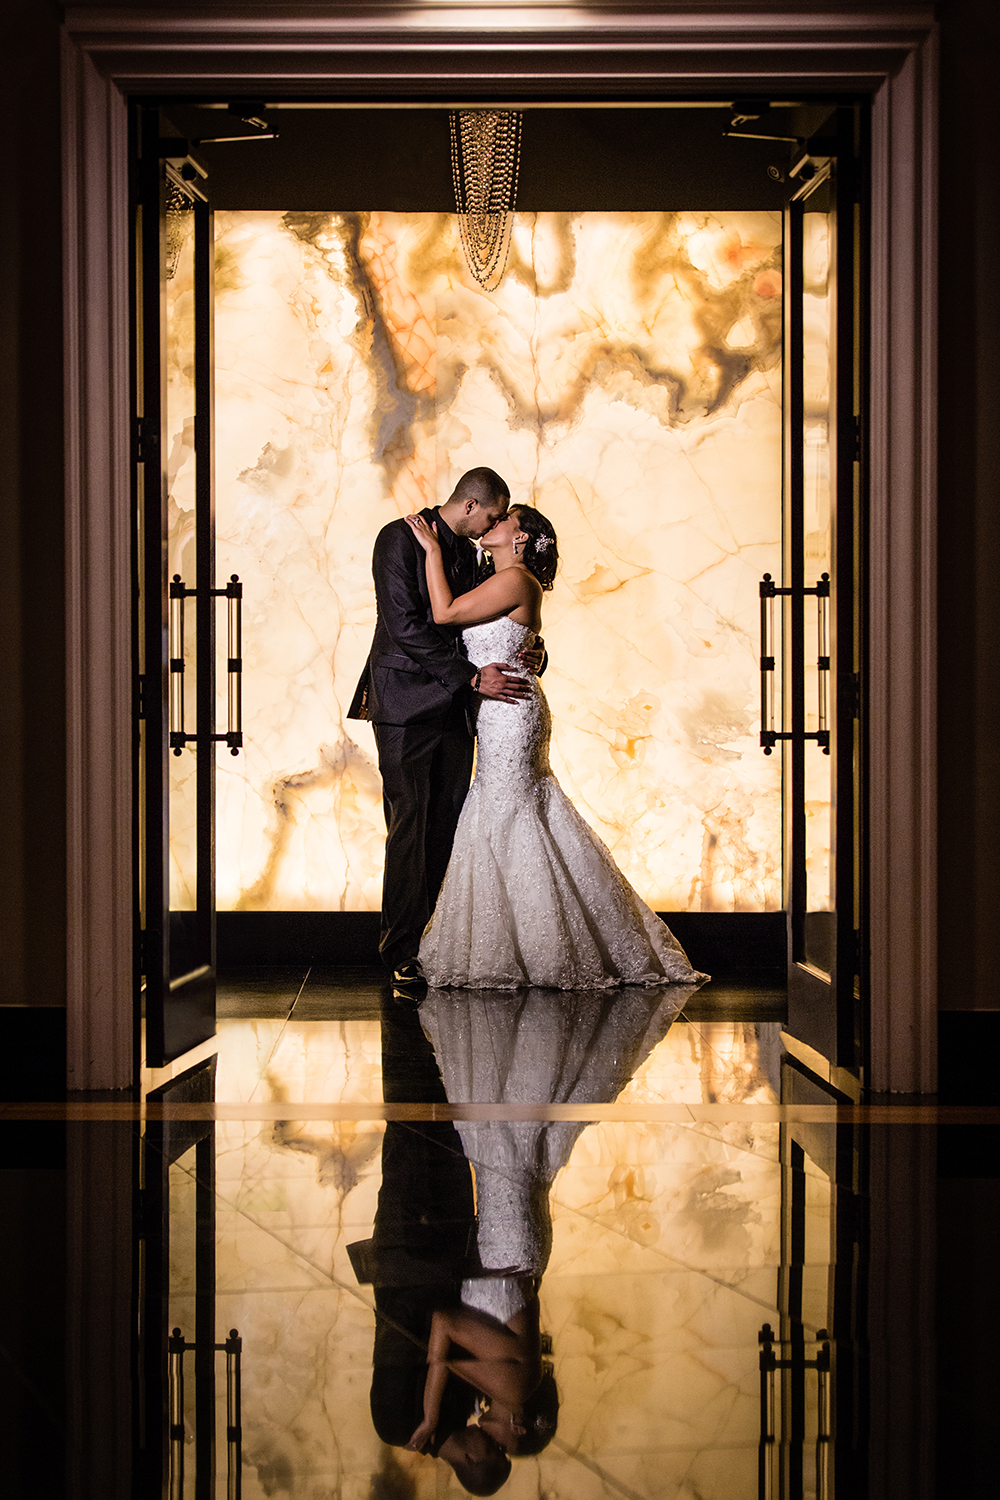 Bianca & Bryant - Thank you for giving me the wedding of my dreams!